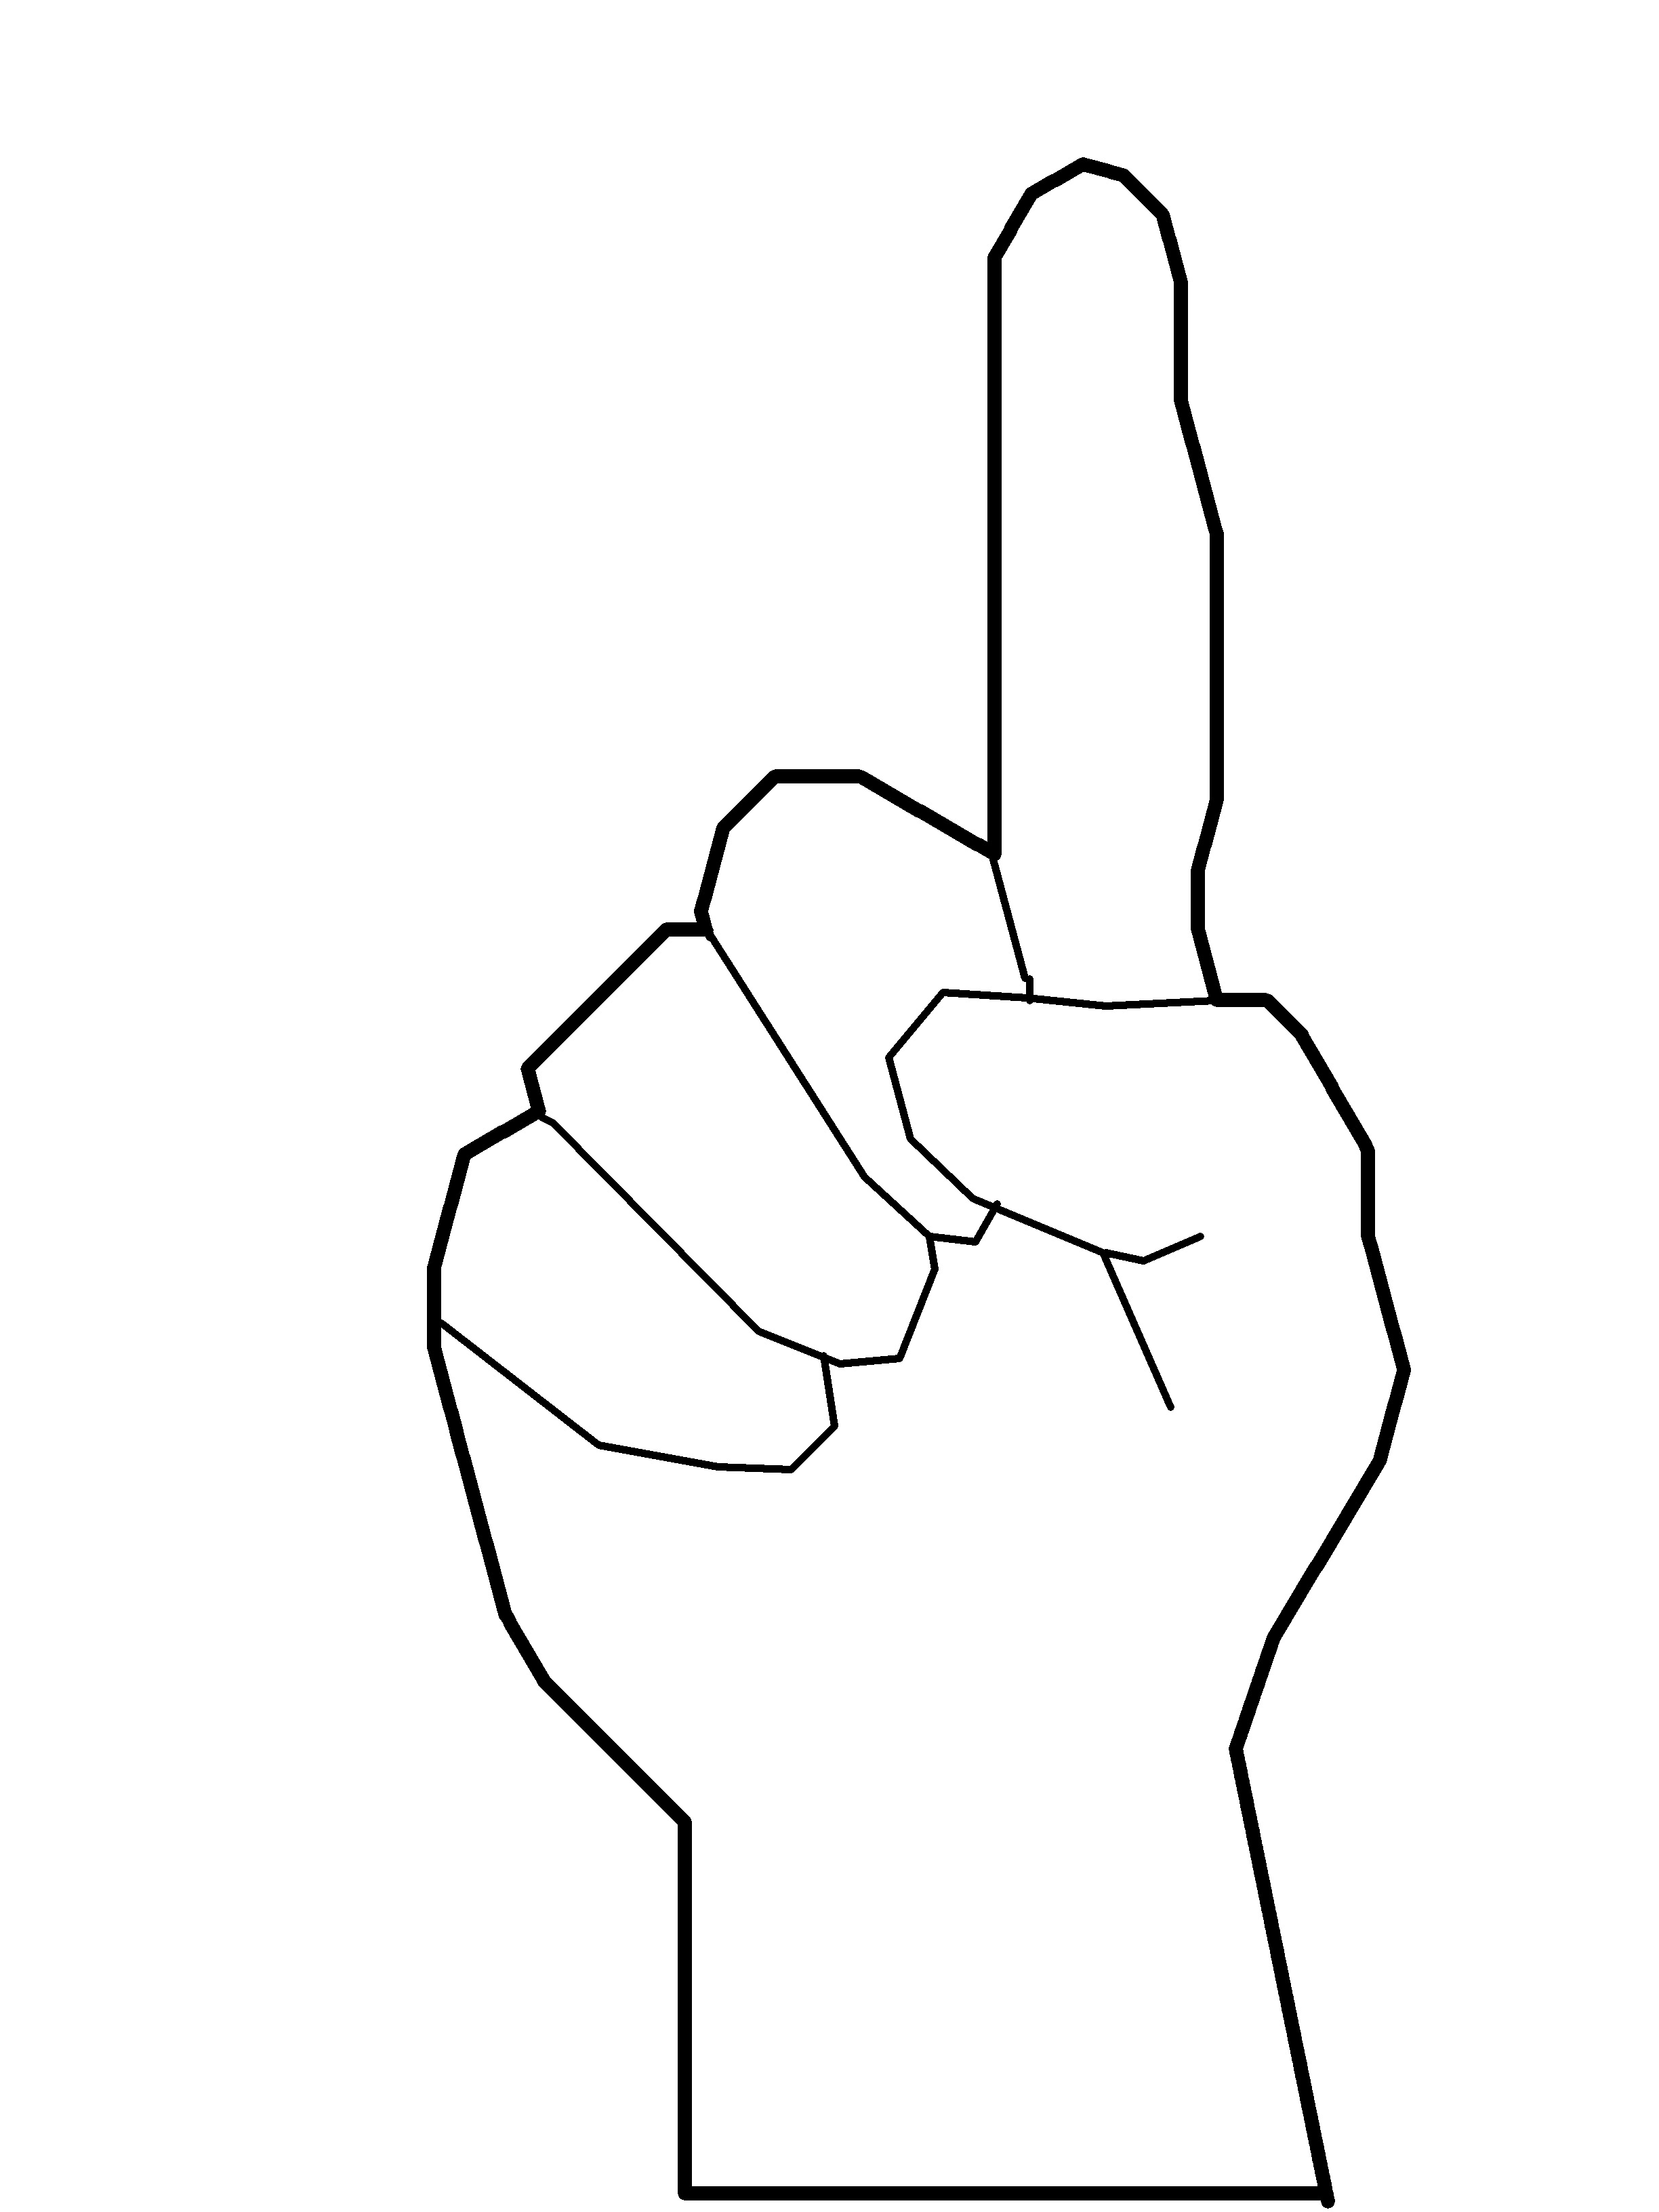 Finger Pointing Drawing